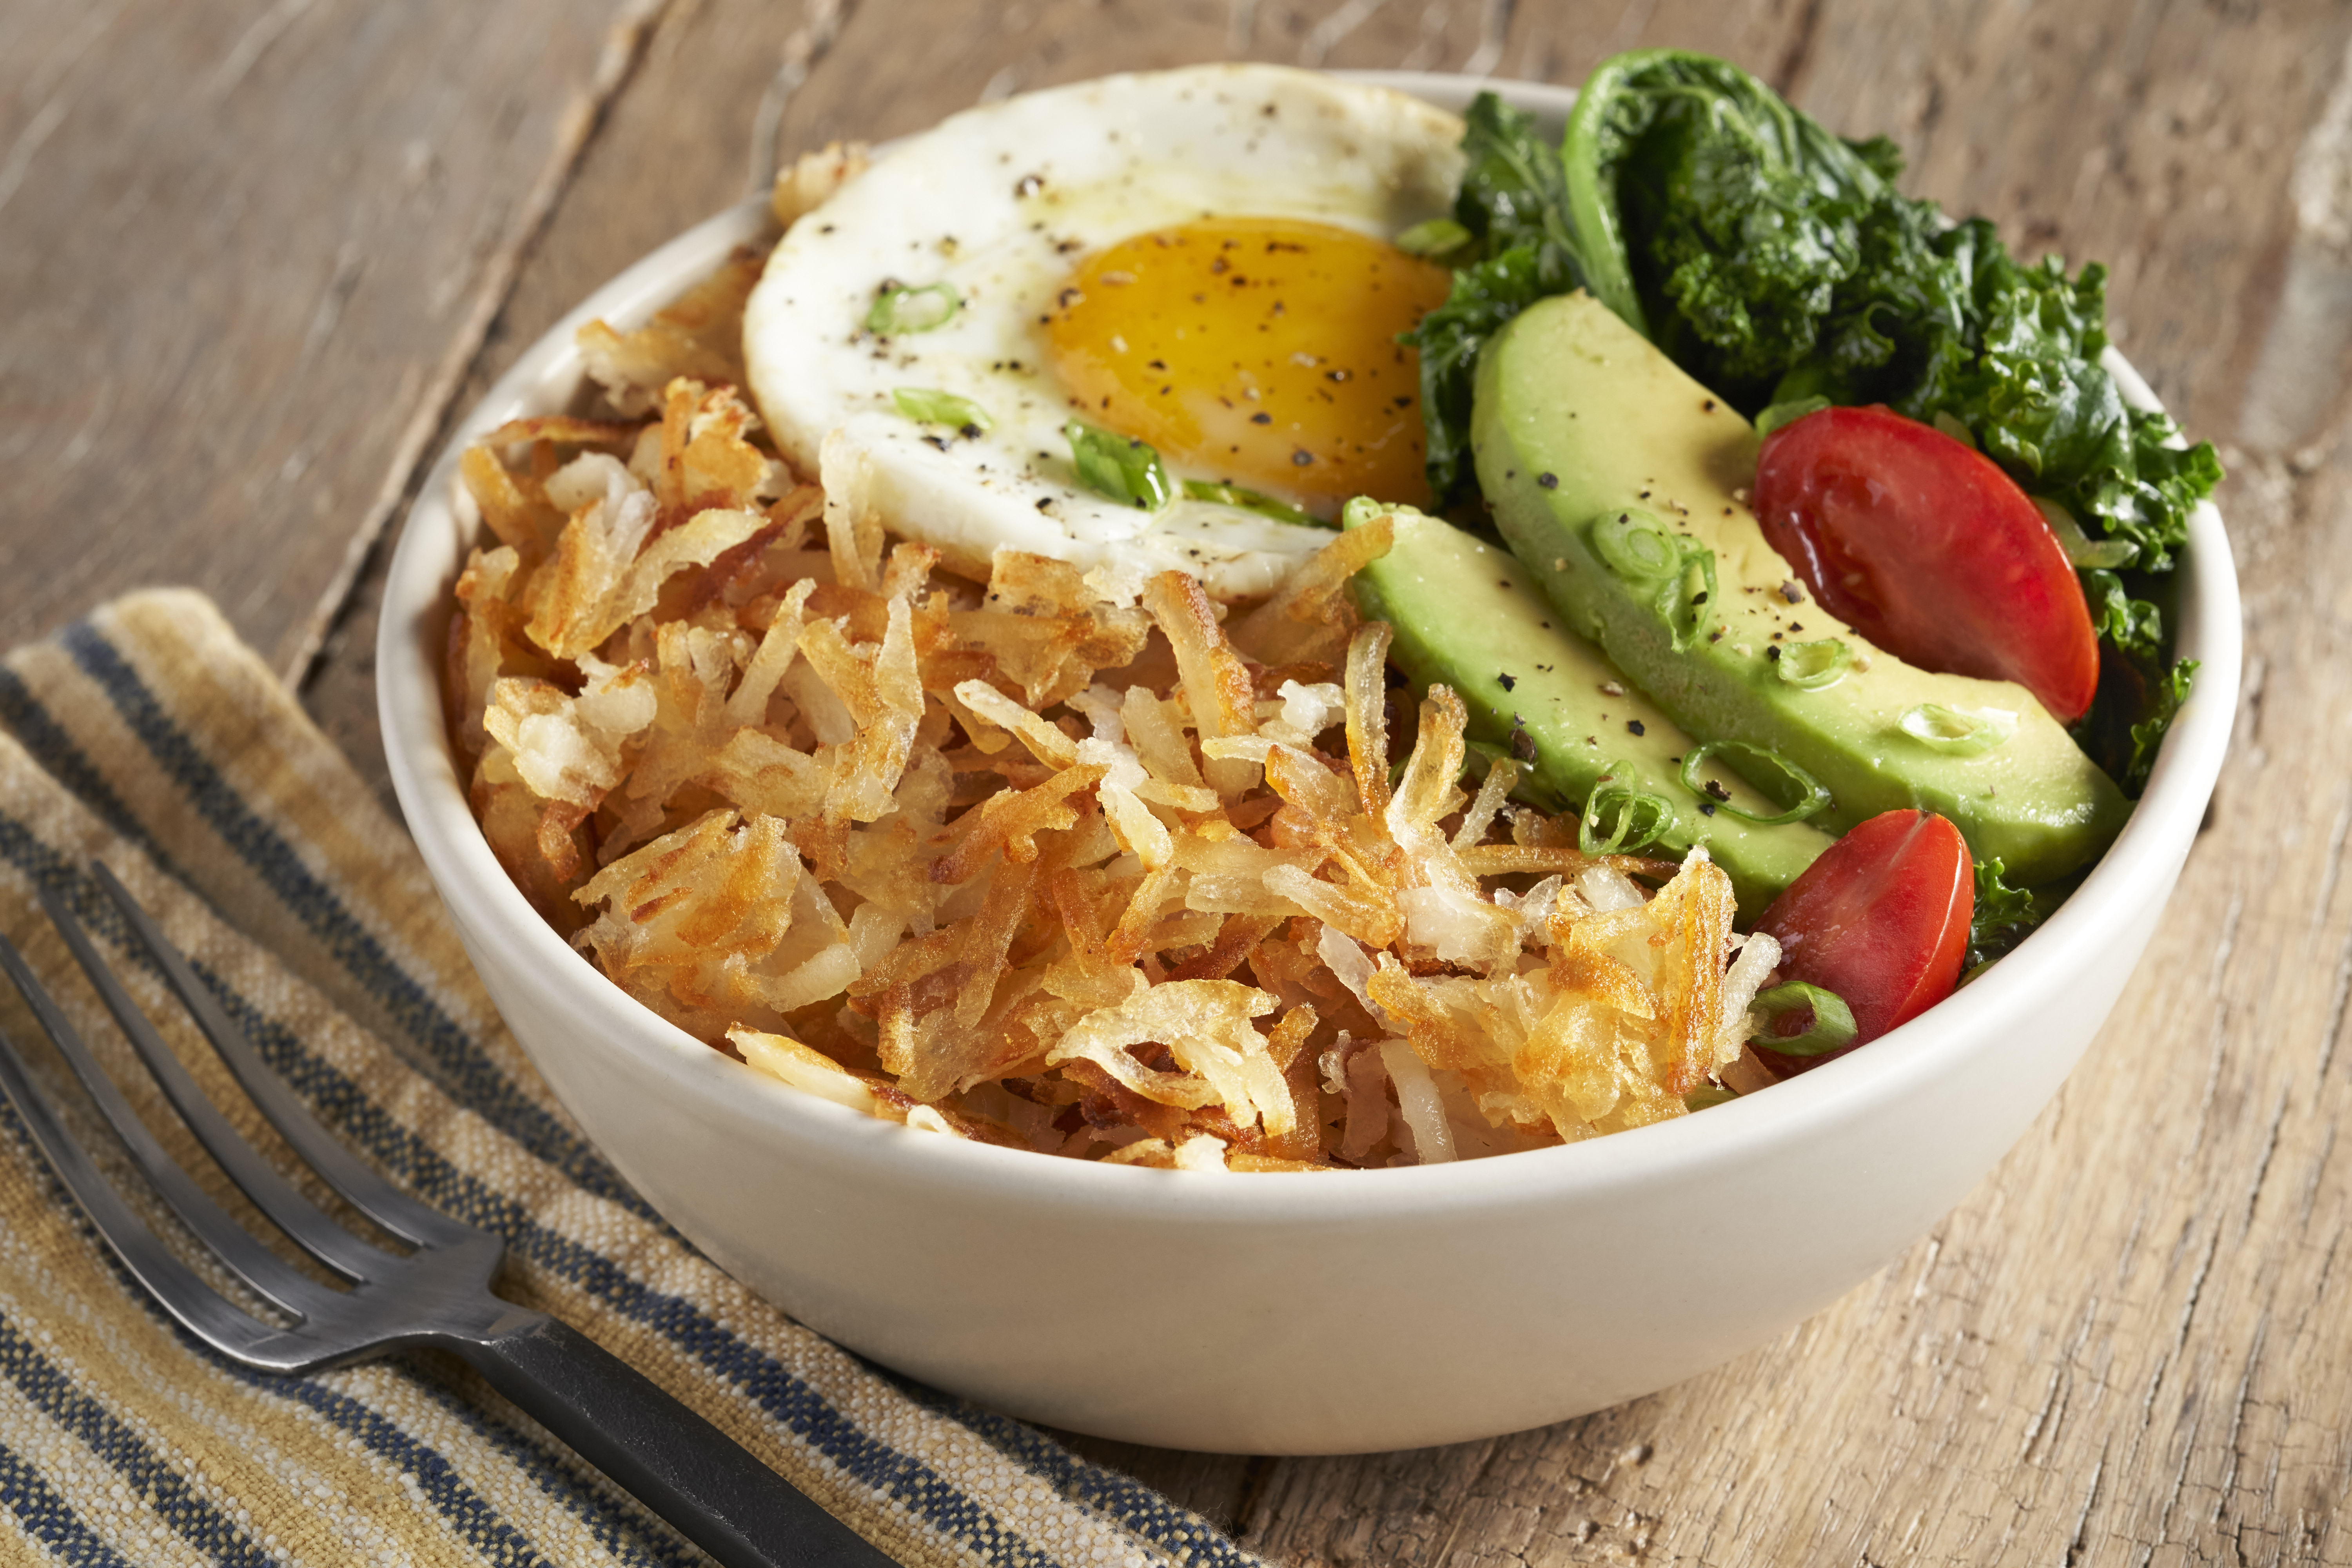 S93 LW PRIVATE RESERVE THIN IQF HASH BROWNS IN BOWL WITH EGG, AVOCADO, VEGGIES, VEGETABLES